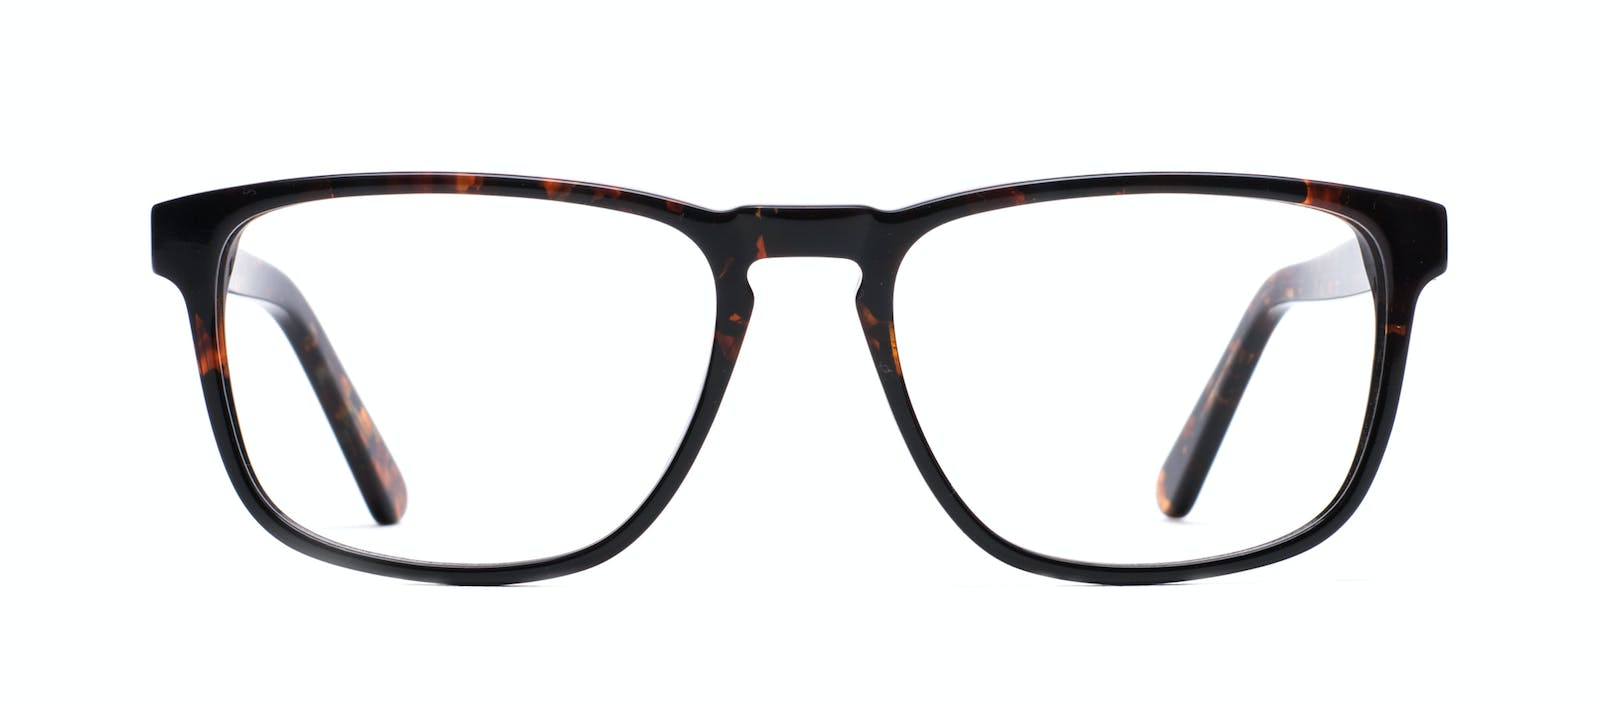 3c4c20abdac Affordable Fashion Glasses Rectangle Eyeglasses Men Loft Mahogany Black  Front